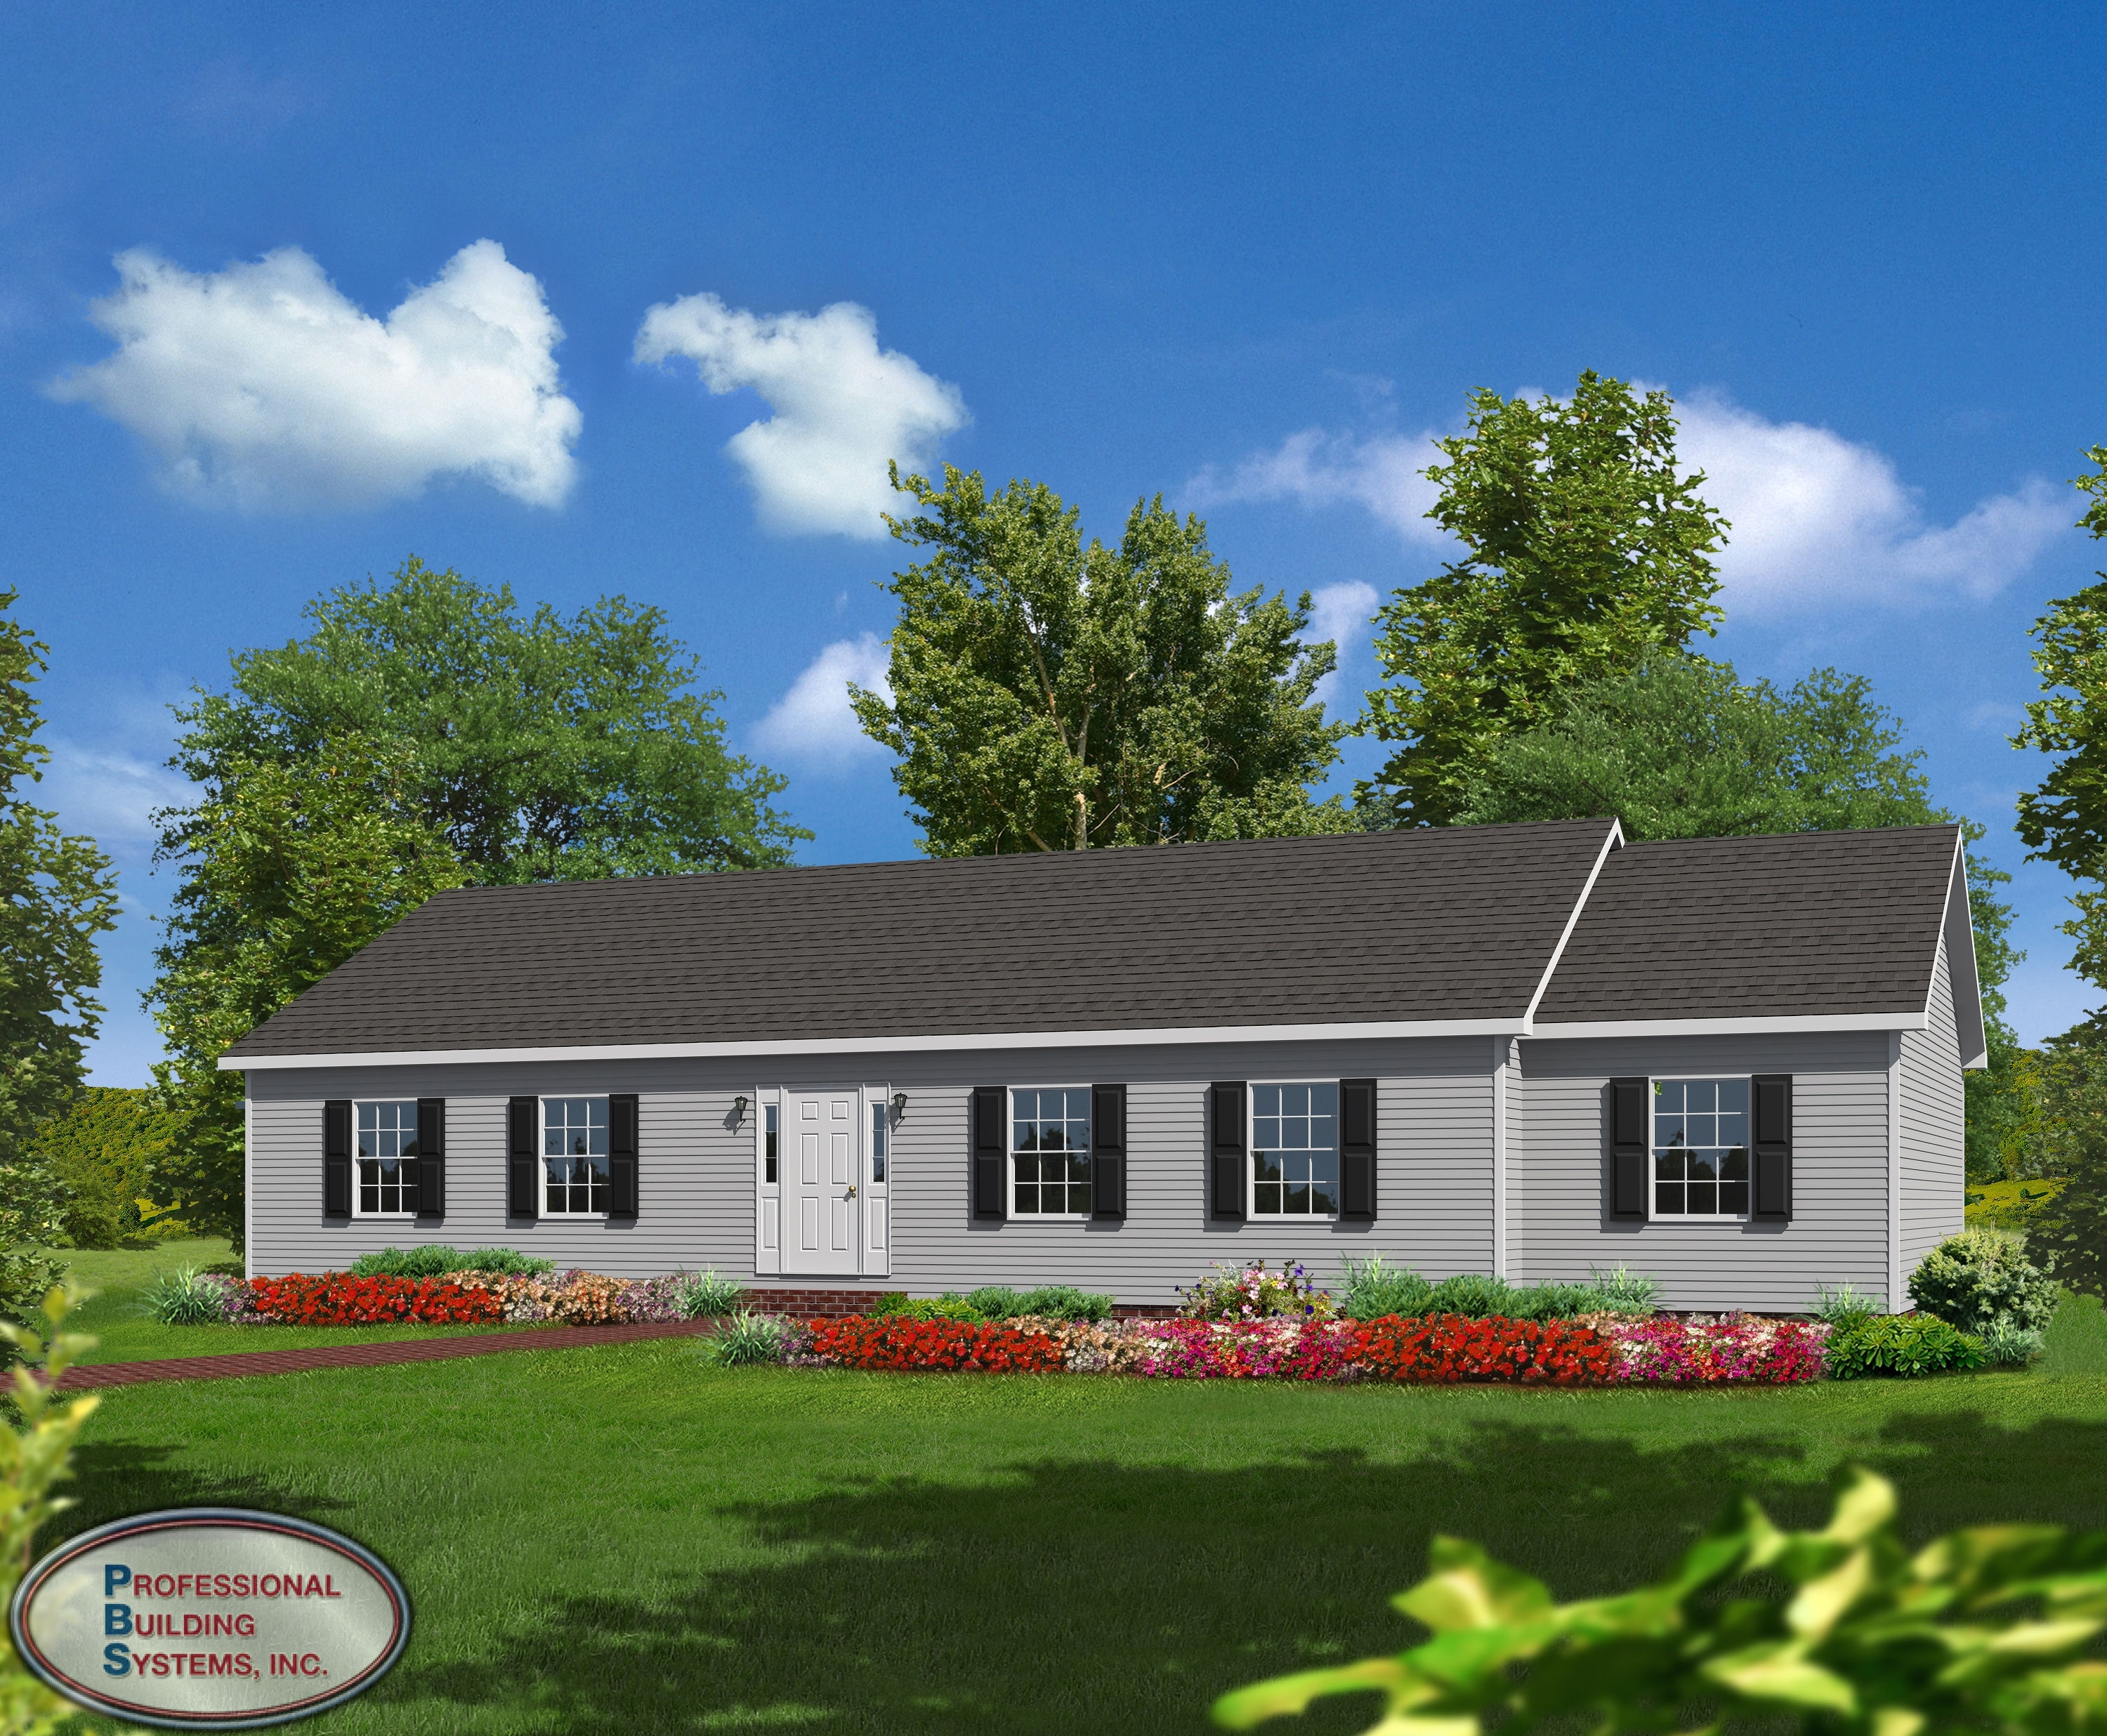 Brook park professional building systems for New ranch style homes in maryland